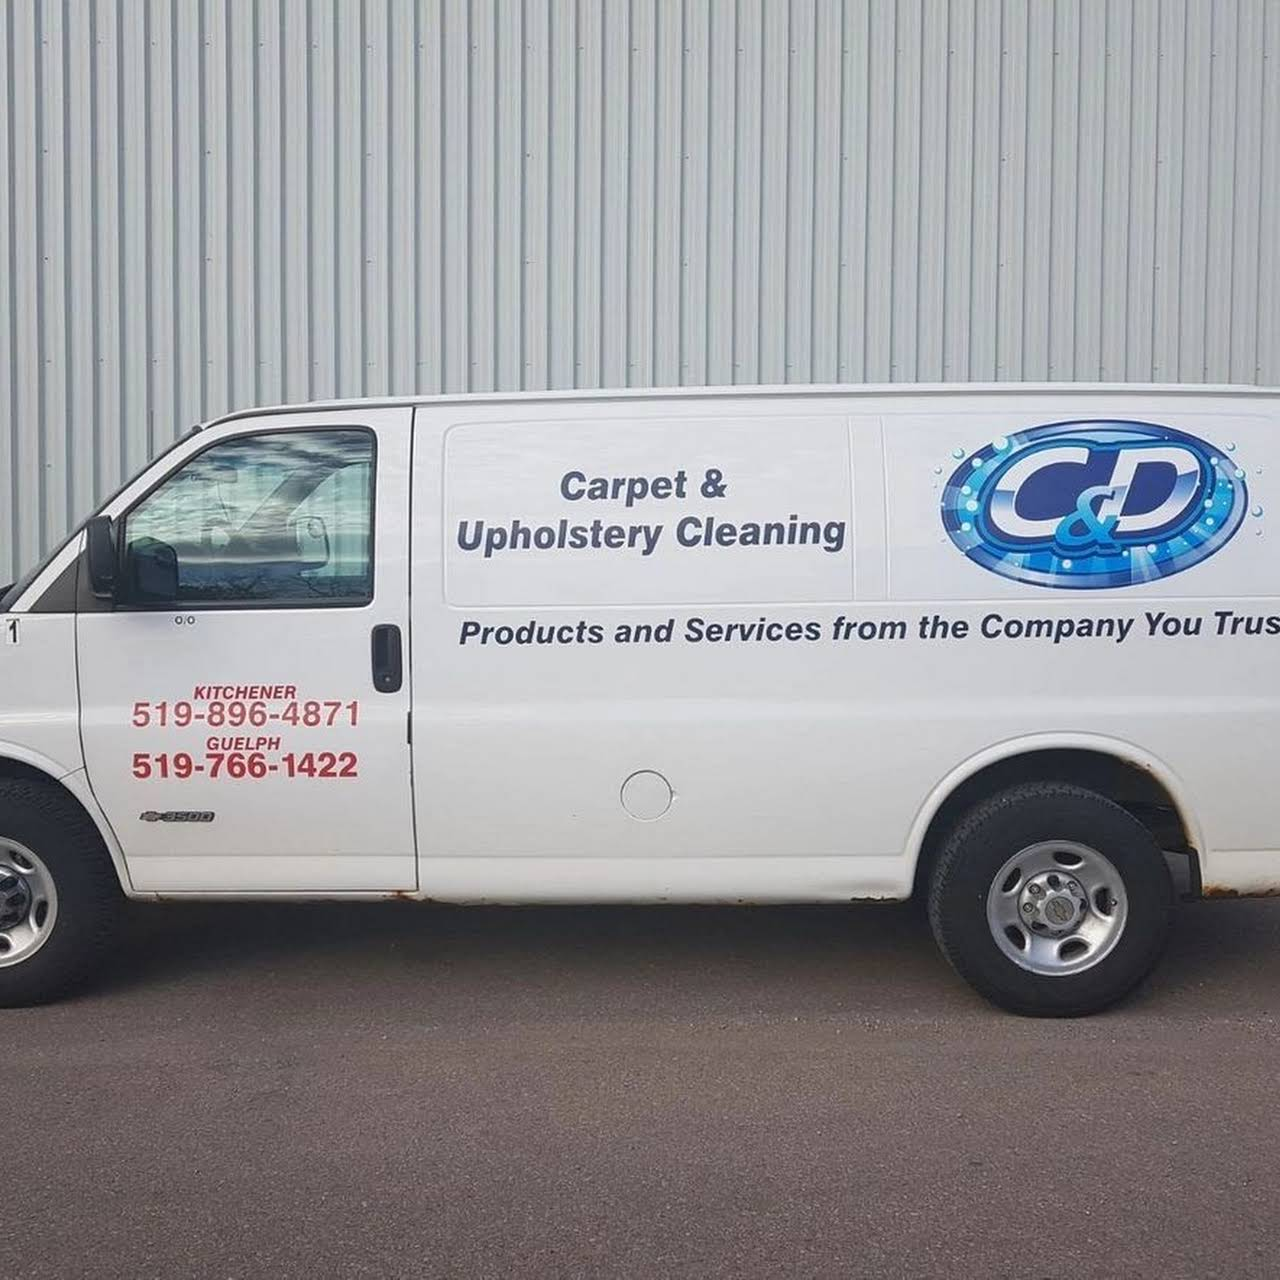 C & D Carpet & Upholstery Cleaning - Carpet Cleaning Service in ...